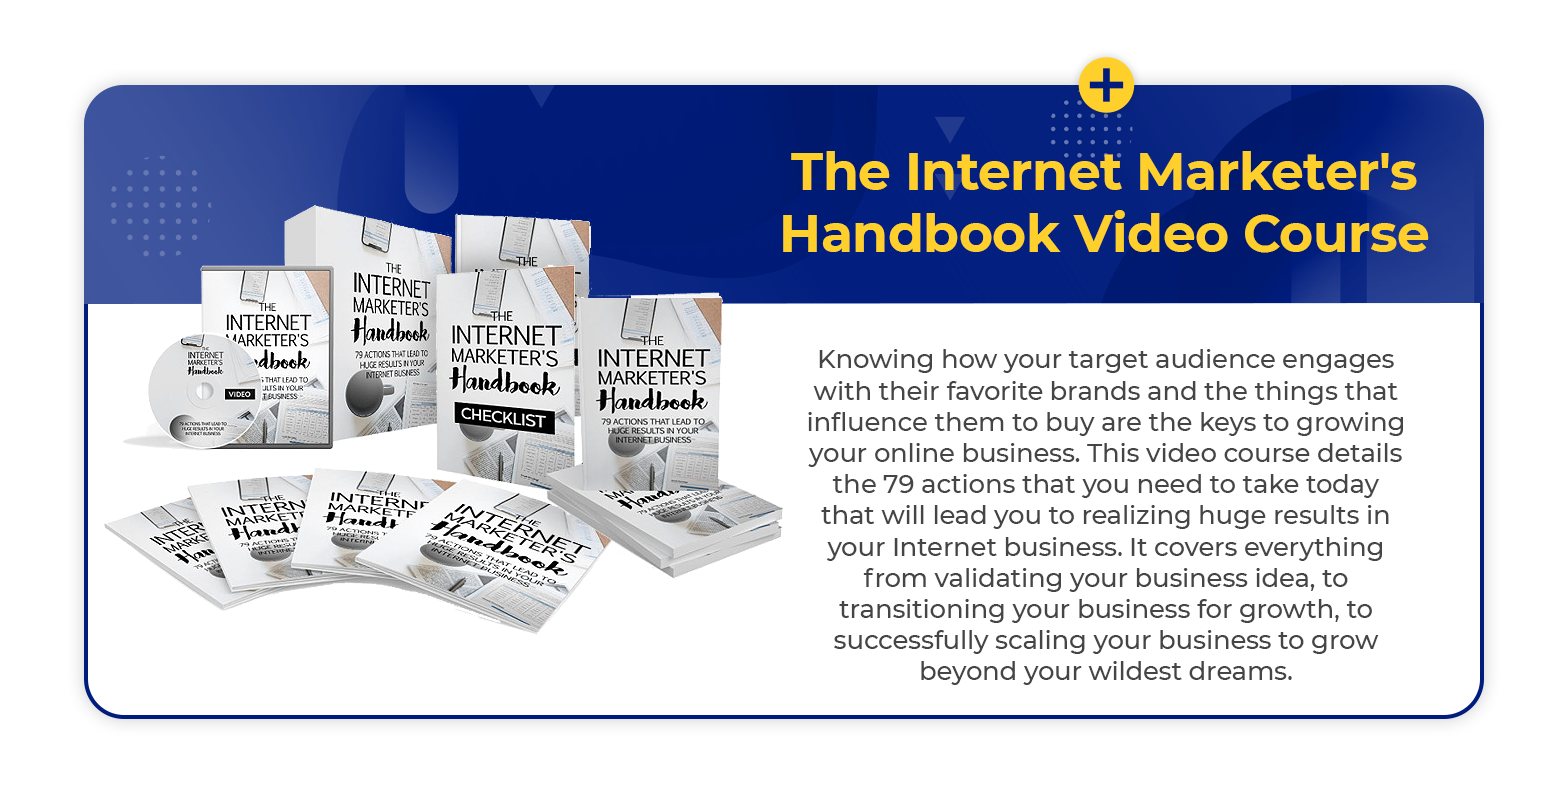 Internet marketing video course